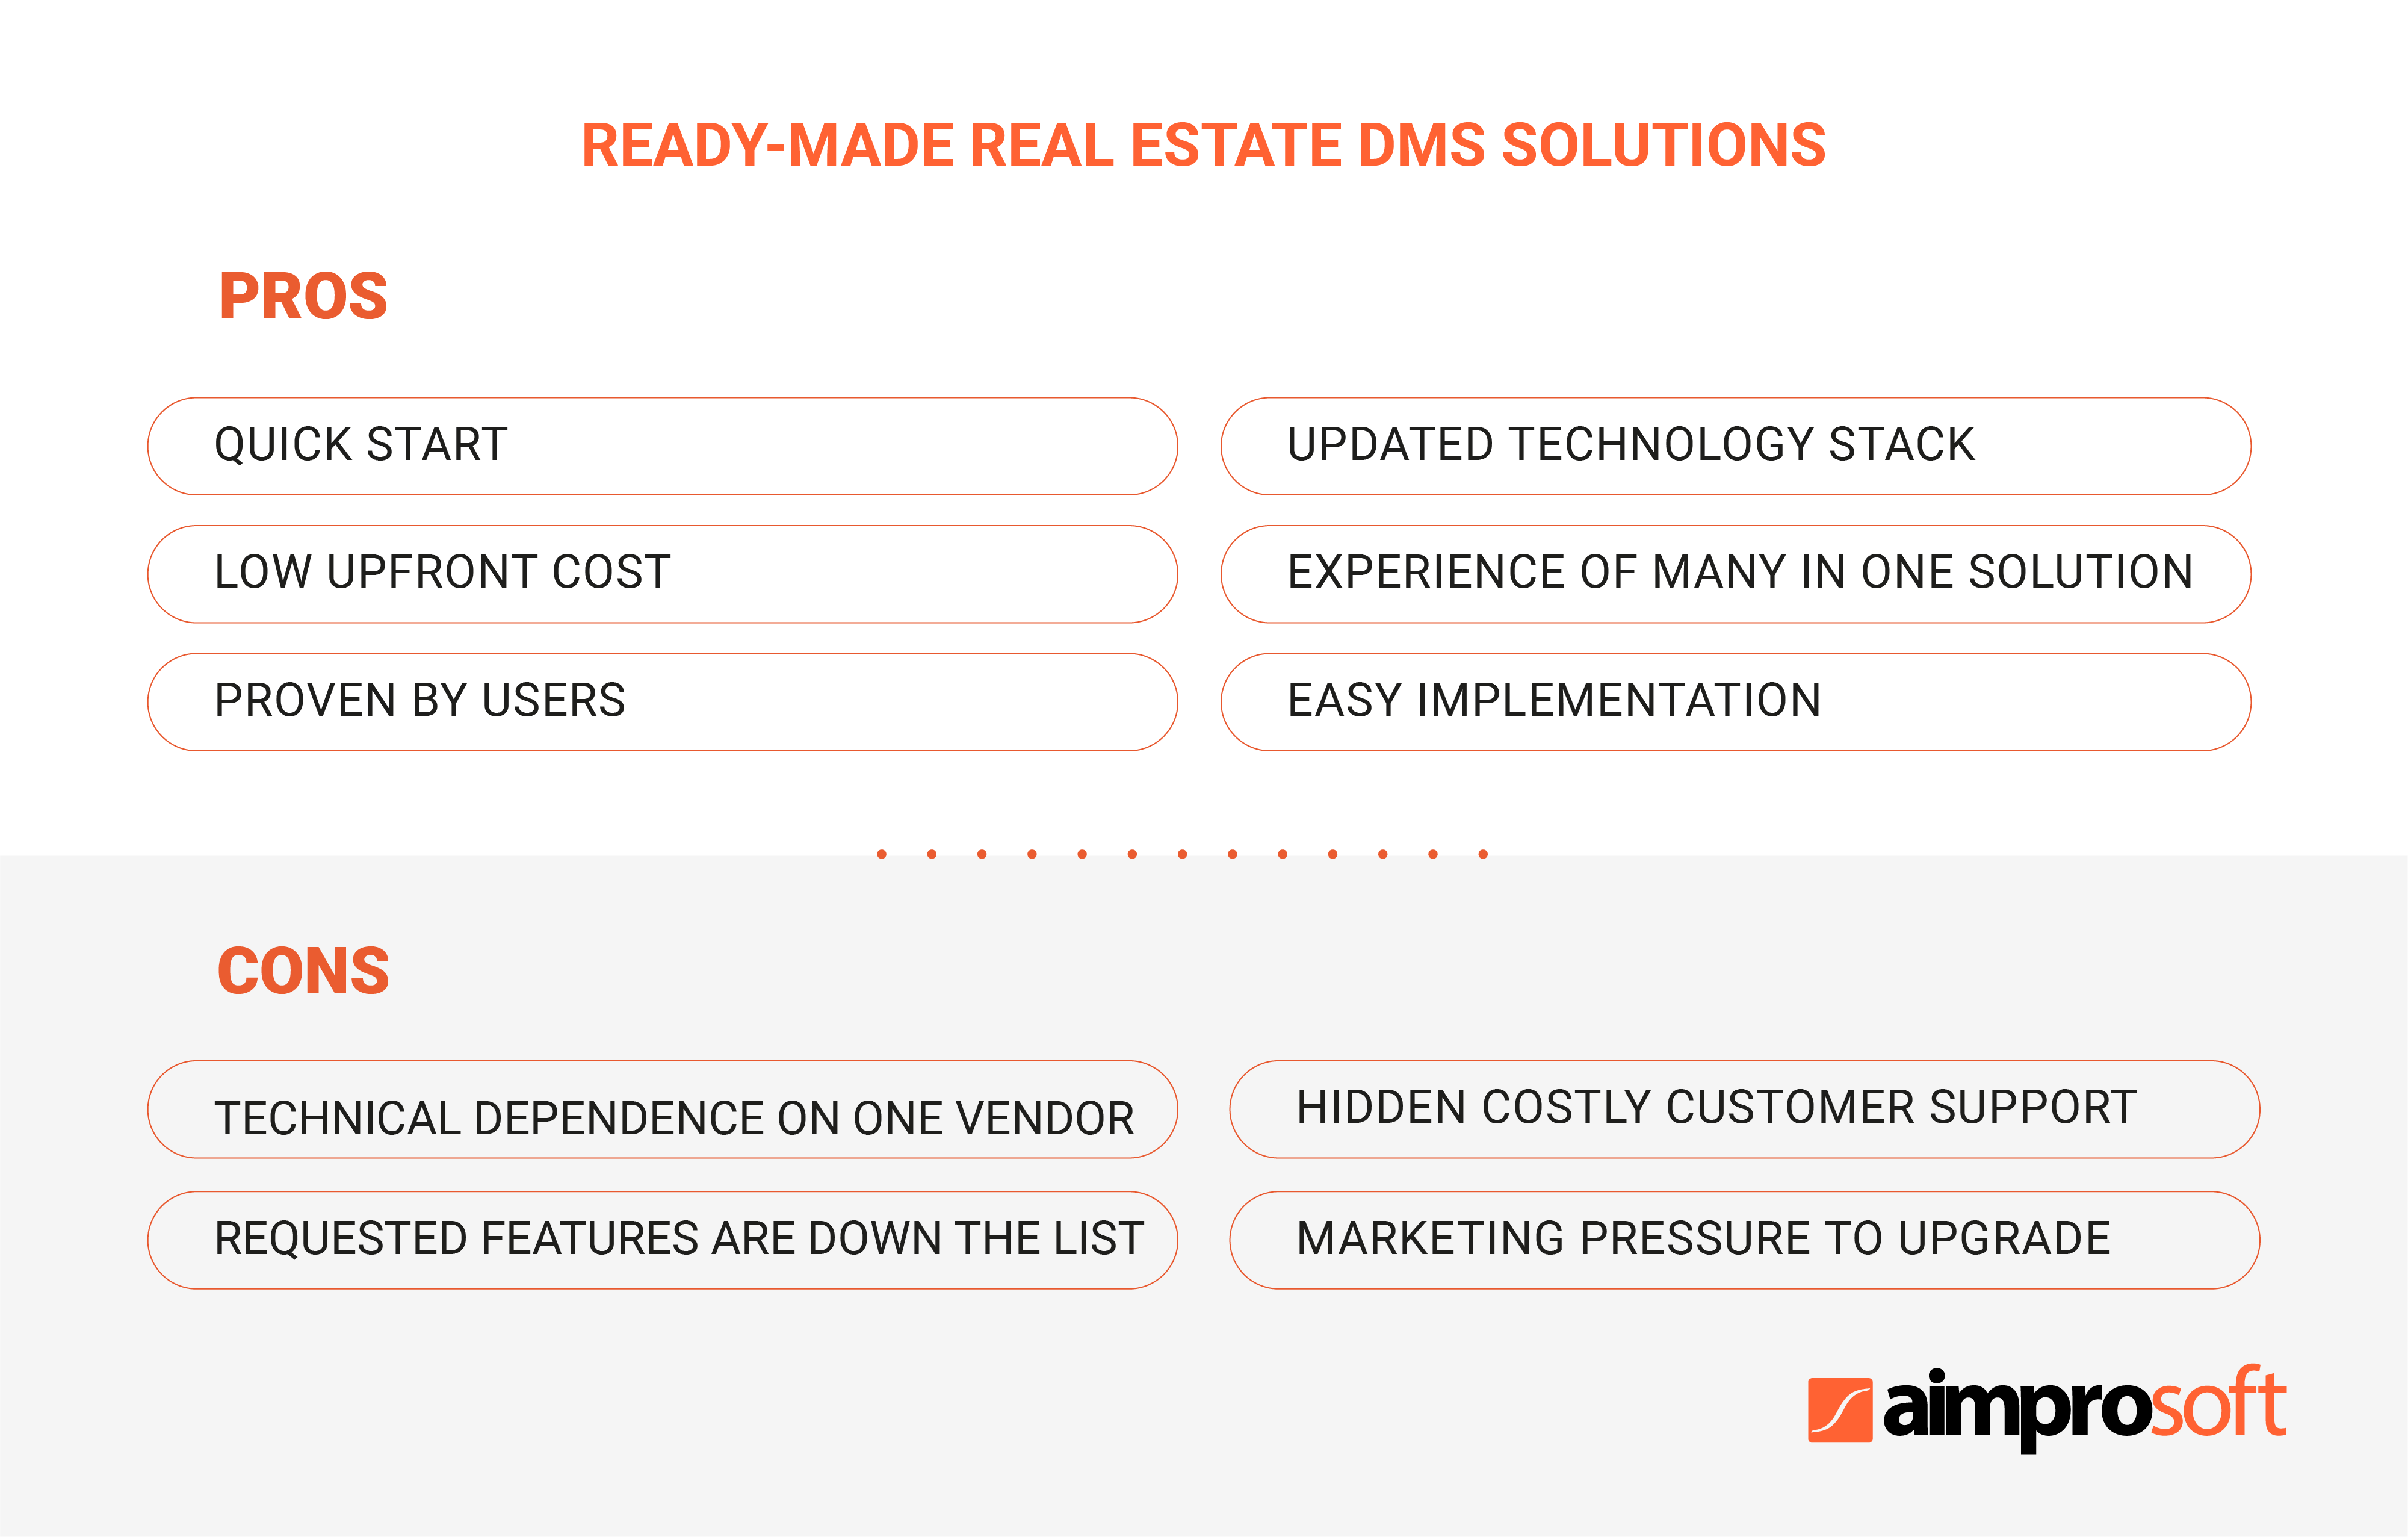 Real estate ready-made solution: pros and cons of document management software